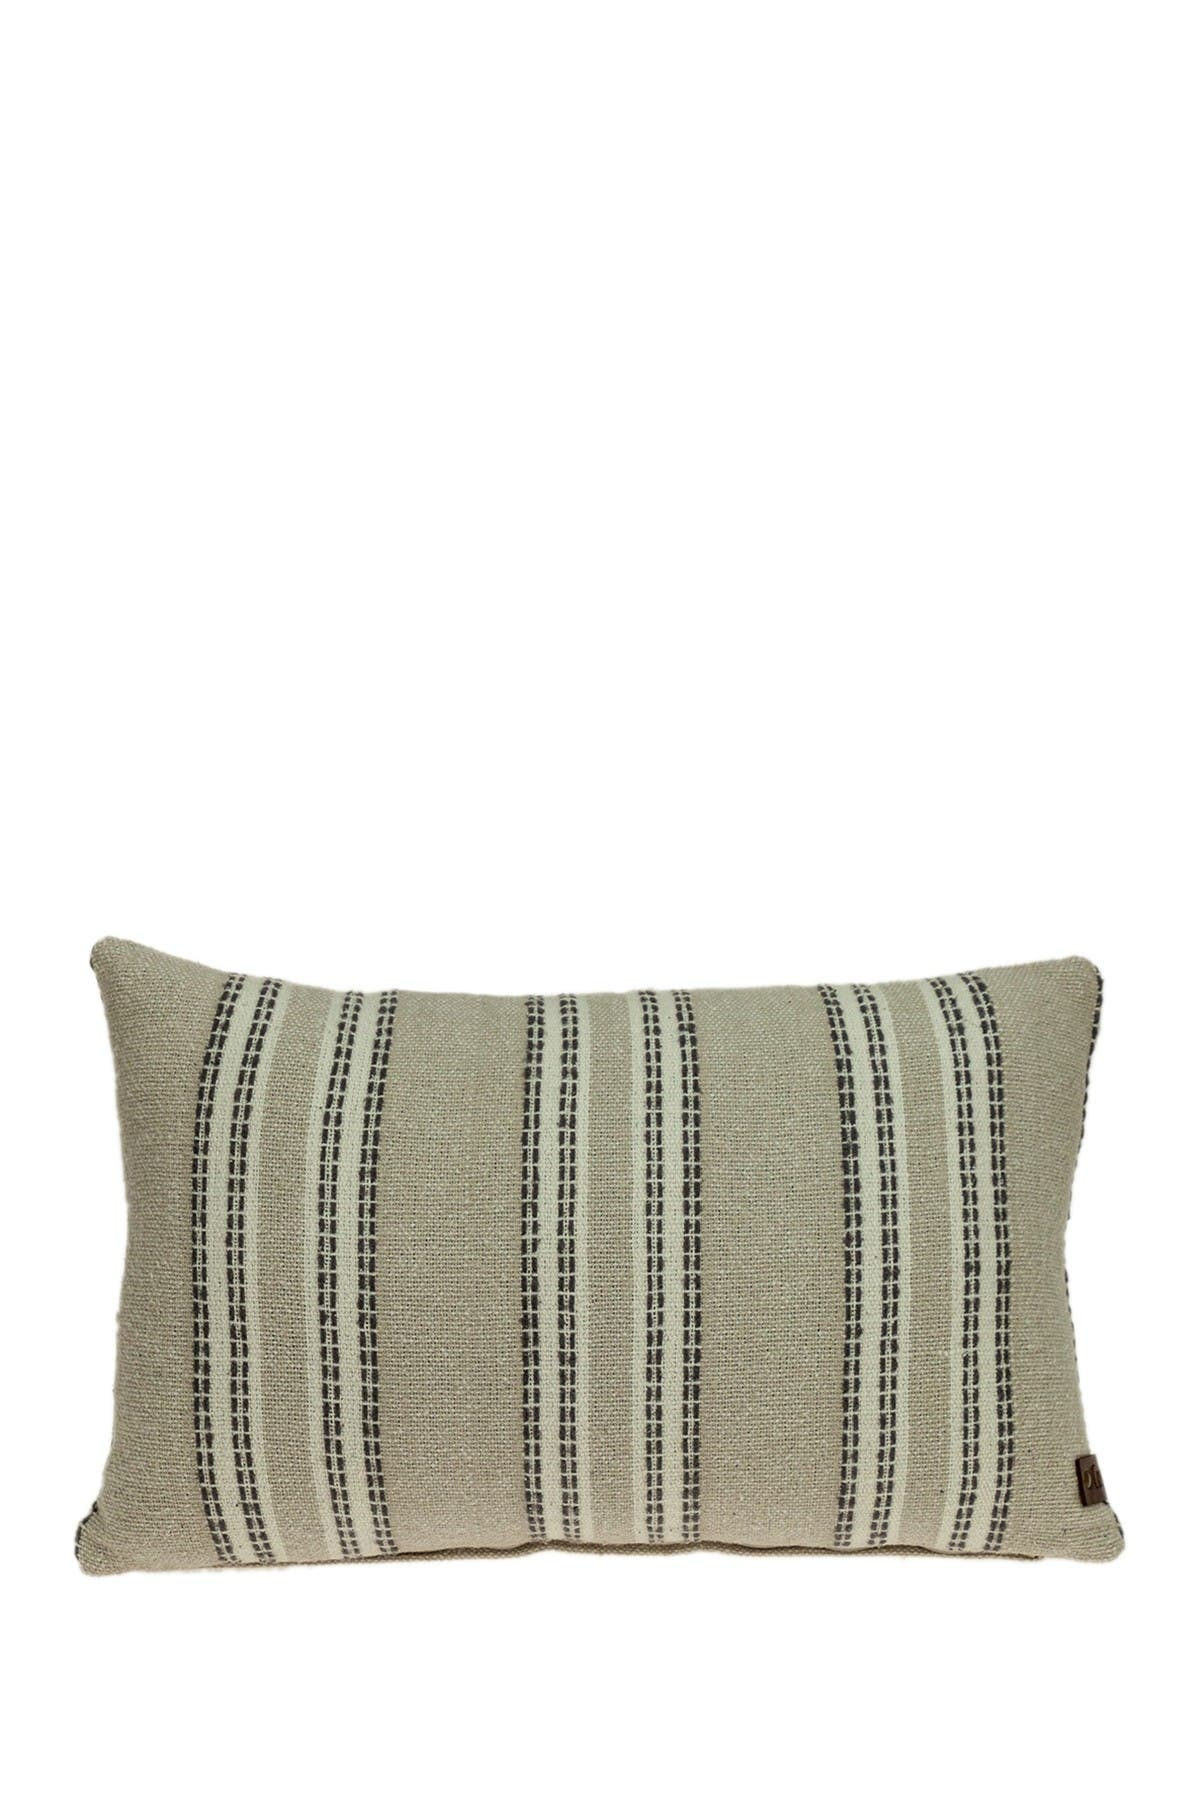 Image of Parkland Collection Bliss Transitional Beige Throw Pillow